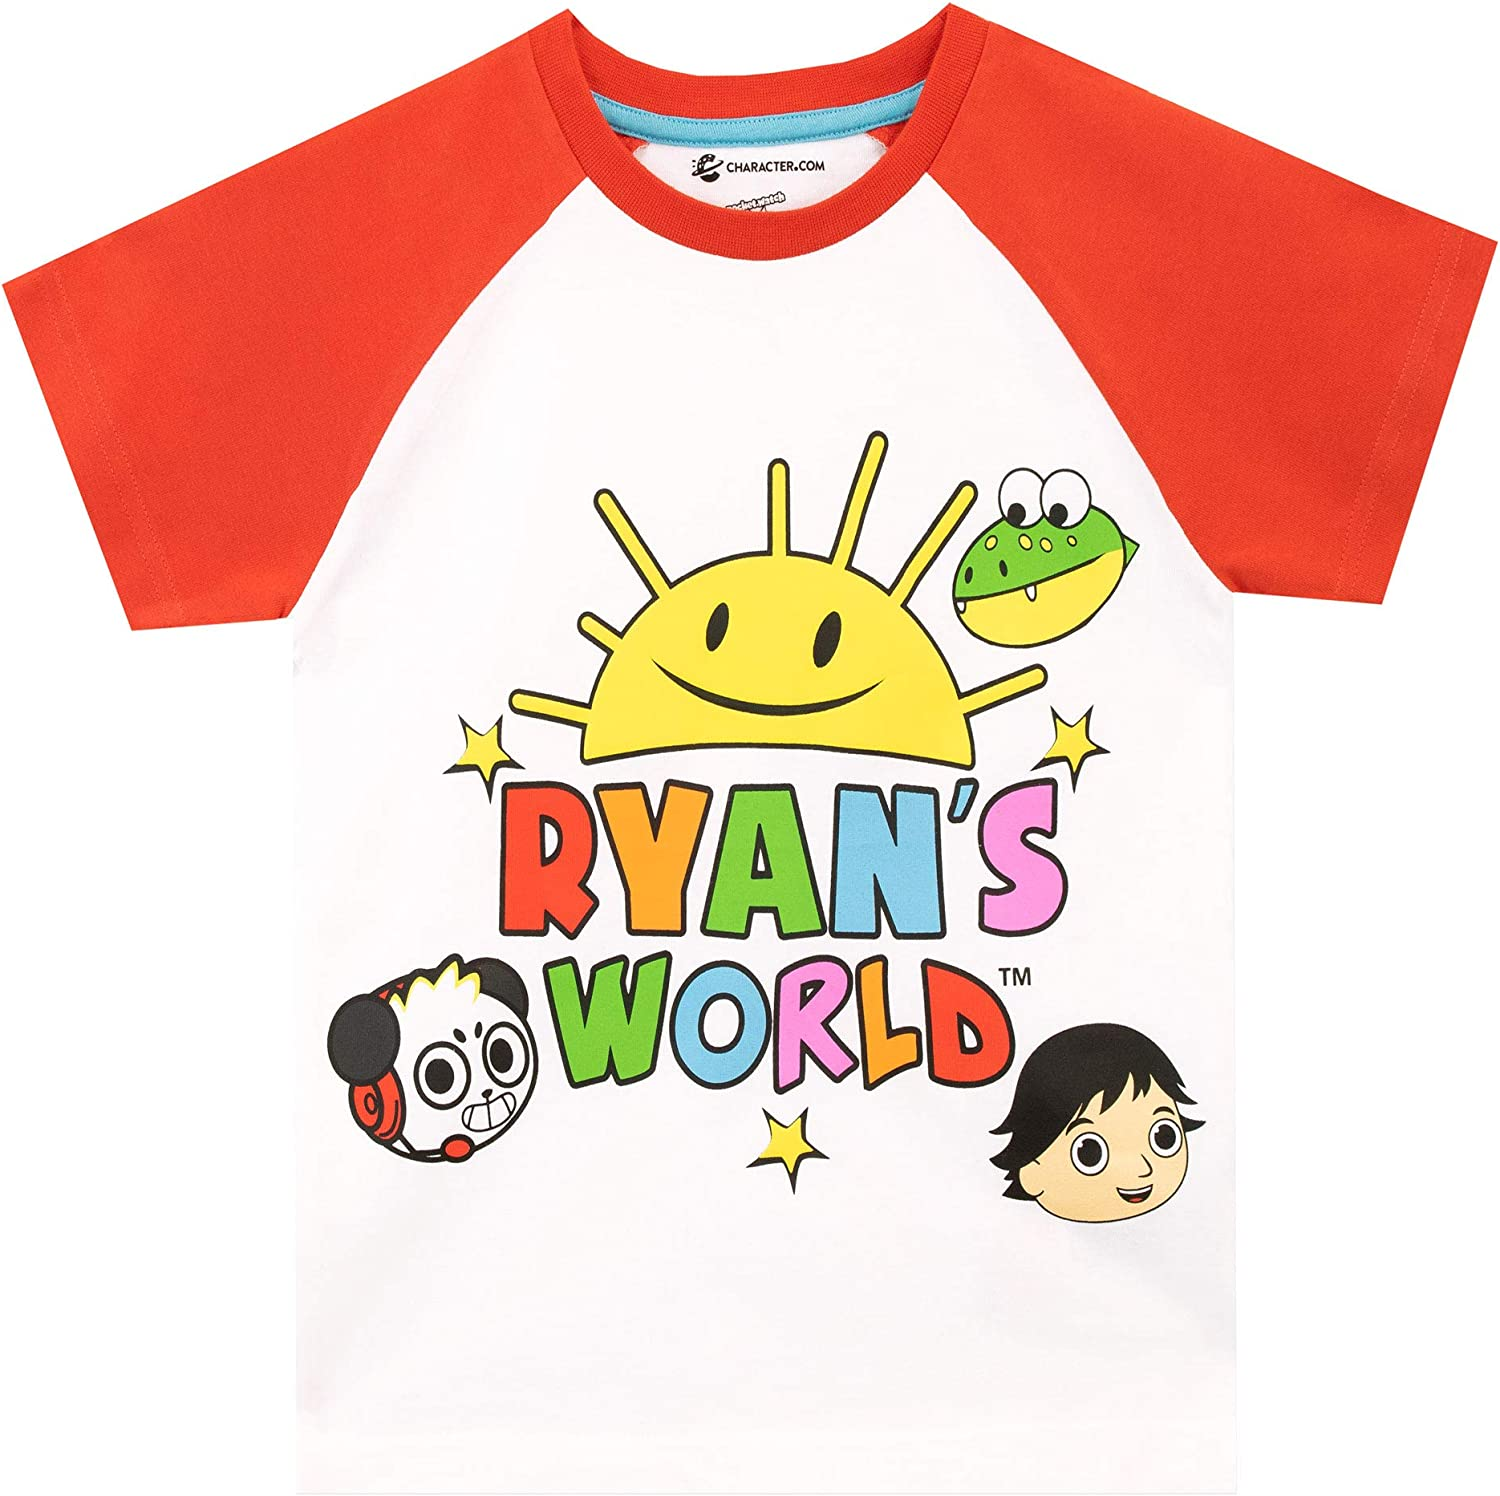 Boys Clothes Set Ryans T-Shirt World Tracksuits Long Sleeve Top And Trousers YouTube Toy Review